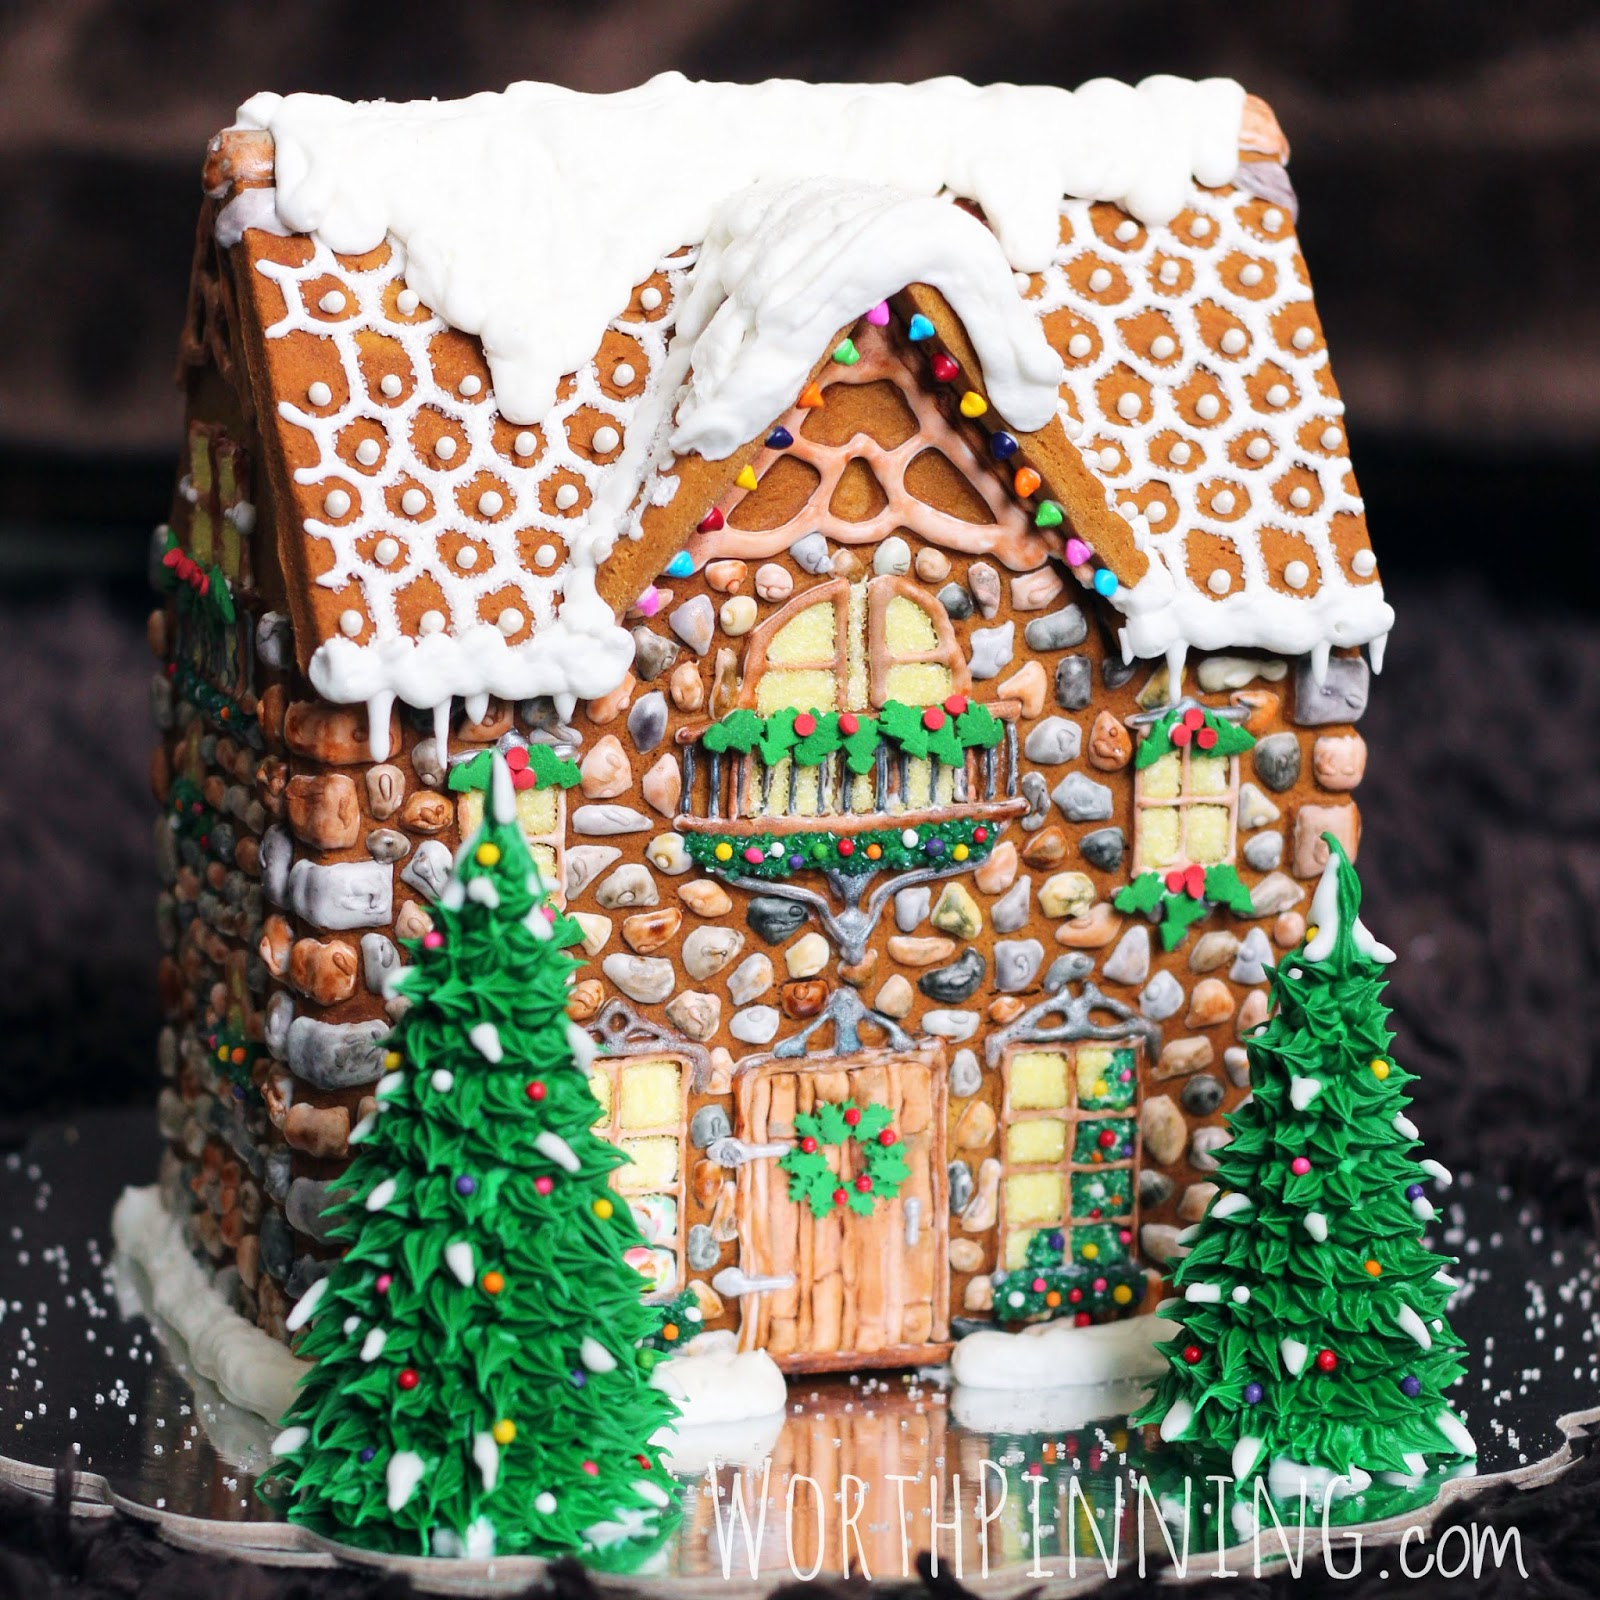 10 Gingerbread Houses For National Gingerbread House Day